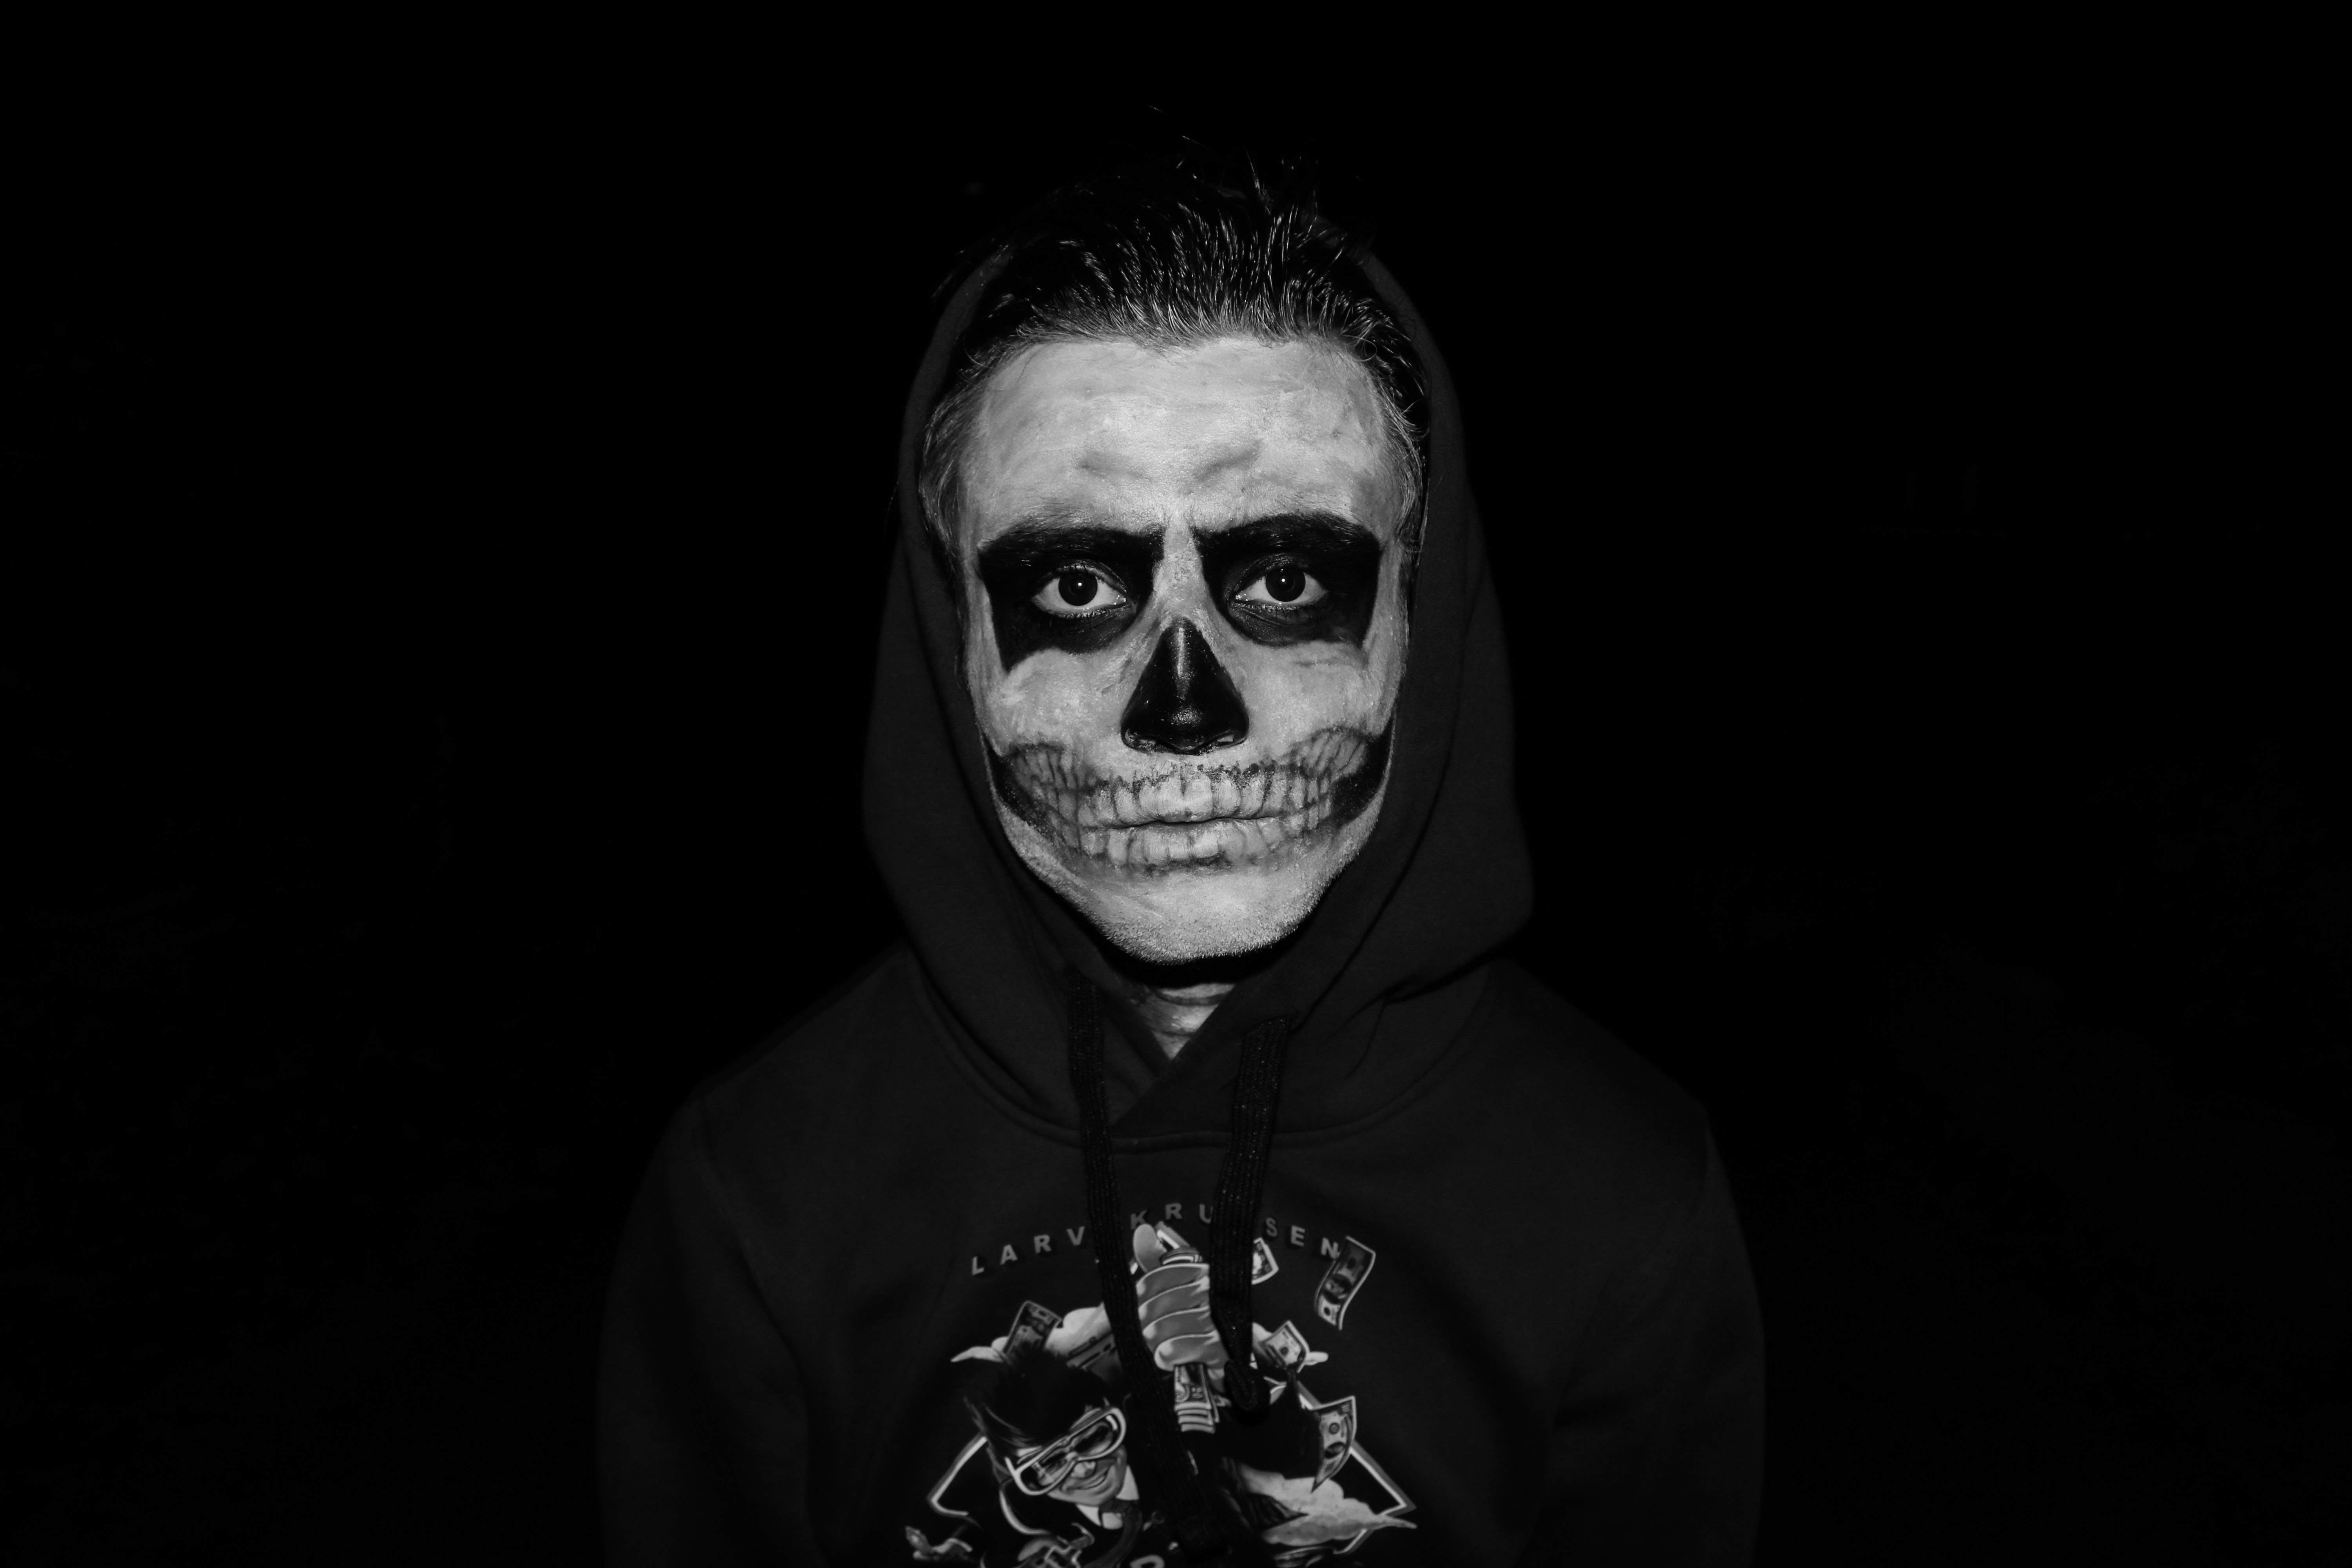 person wearing skull makeup